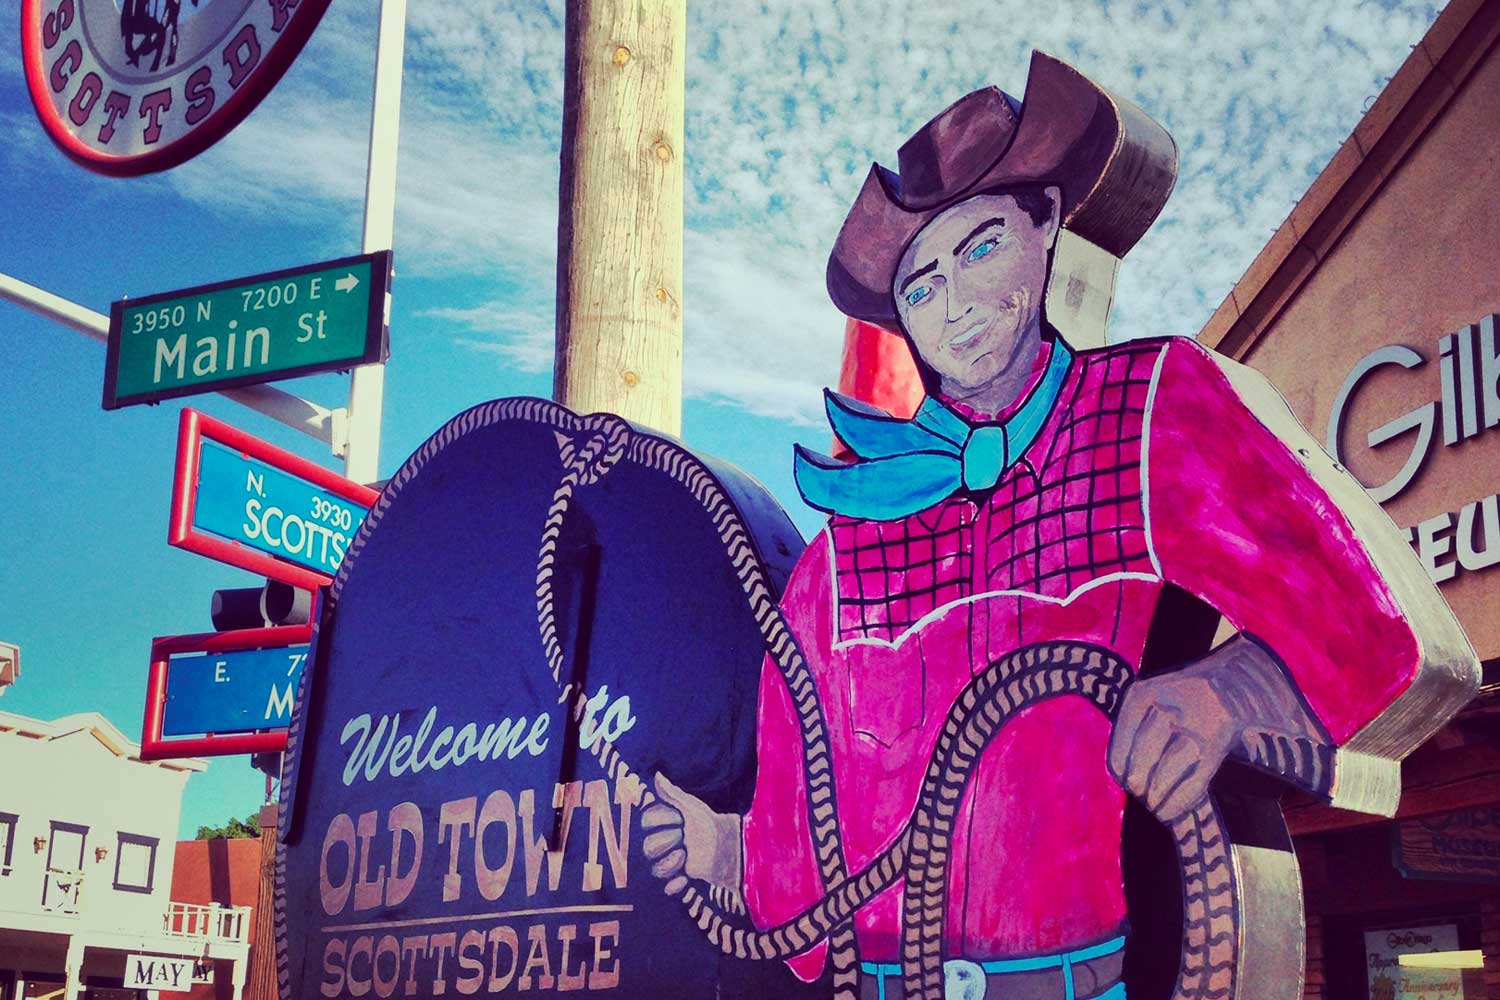 cowboy sign welcoming guests to Old Town Scottsdale